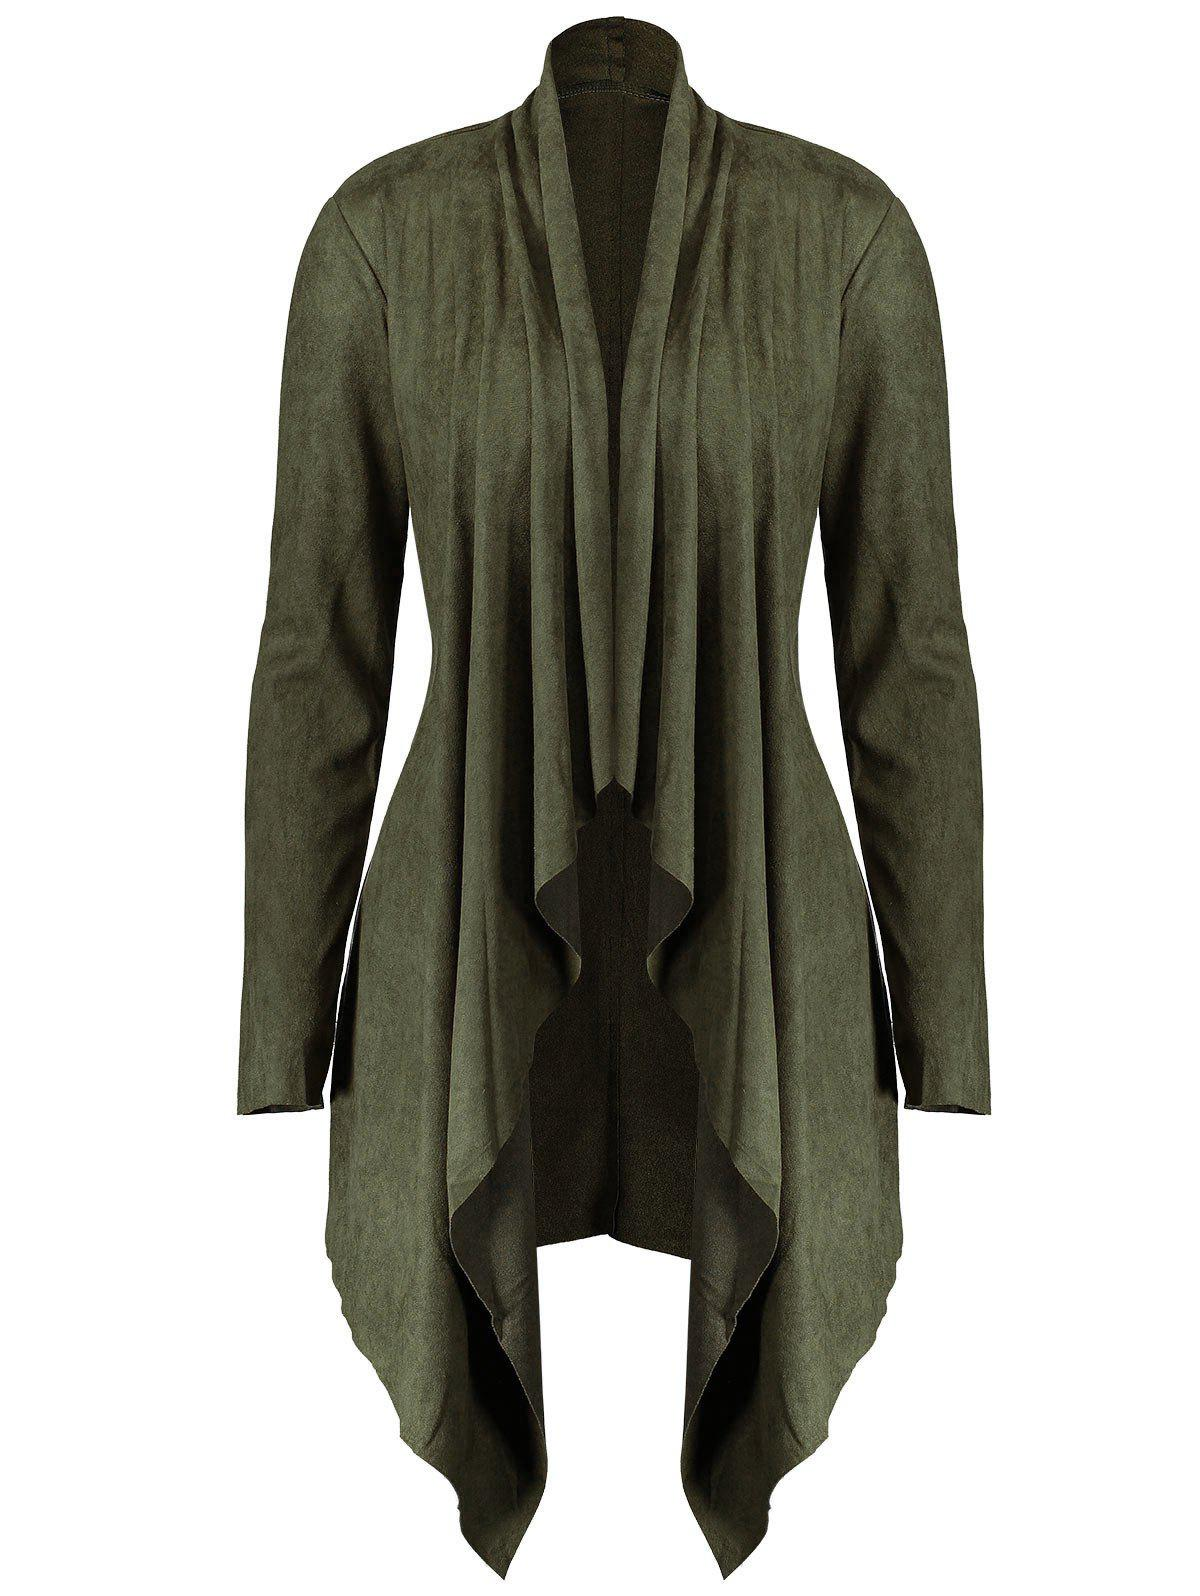 Long Plus Size Faux Suede JacketWOMEN<br><br>Size: 5XL; Color: ARMY GREEN; Clothes Type: Jackets; Material: Polyester,Spandex; Type: Wide-waisted; Shirt Length: Long; Sleeve Length: Full; Collar: Stand-Up Collar; Pattern Type: Solid; Style: Fashion; Season: Fall,Spring; Weight: 0.4200kg; Package Contents: 1 x Jacket;